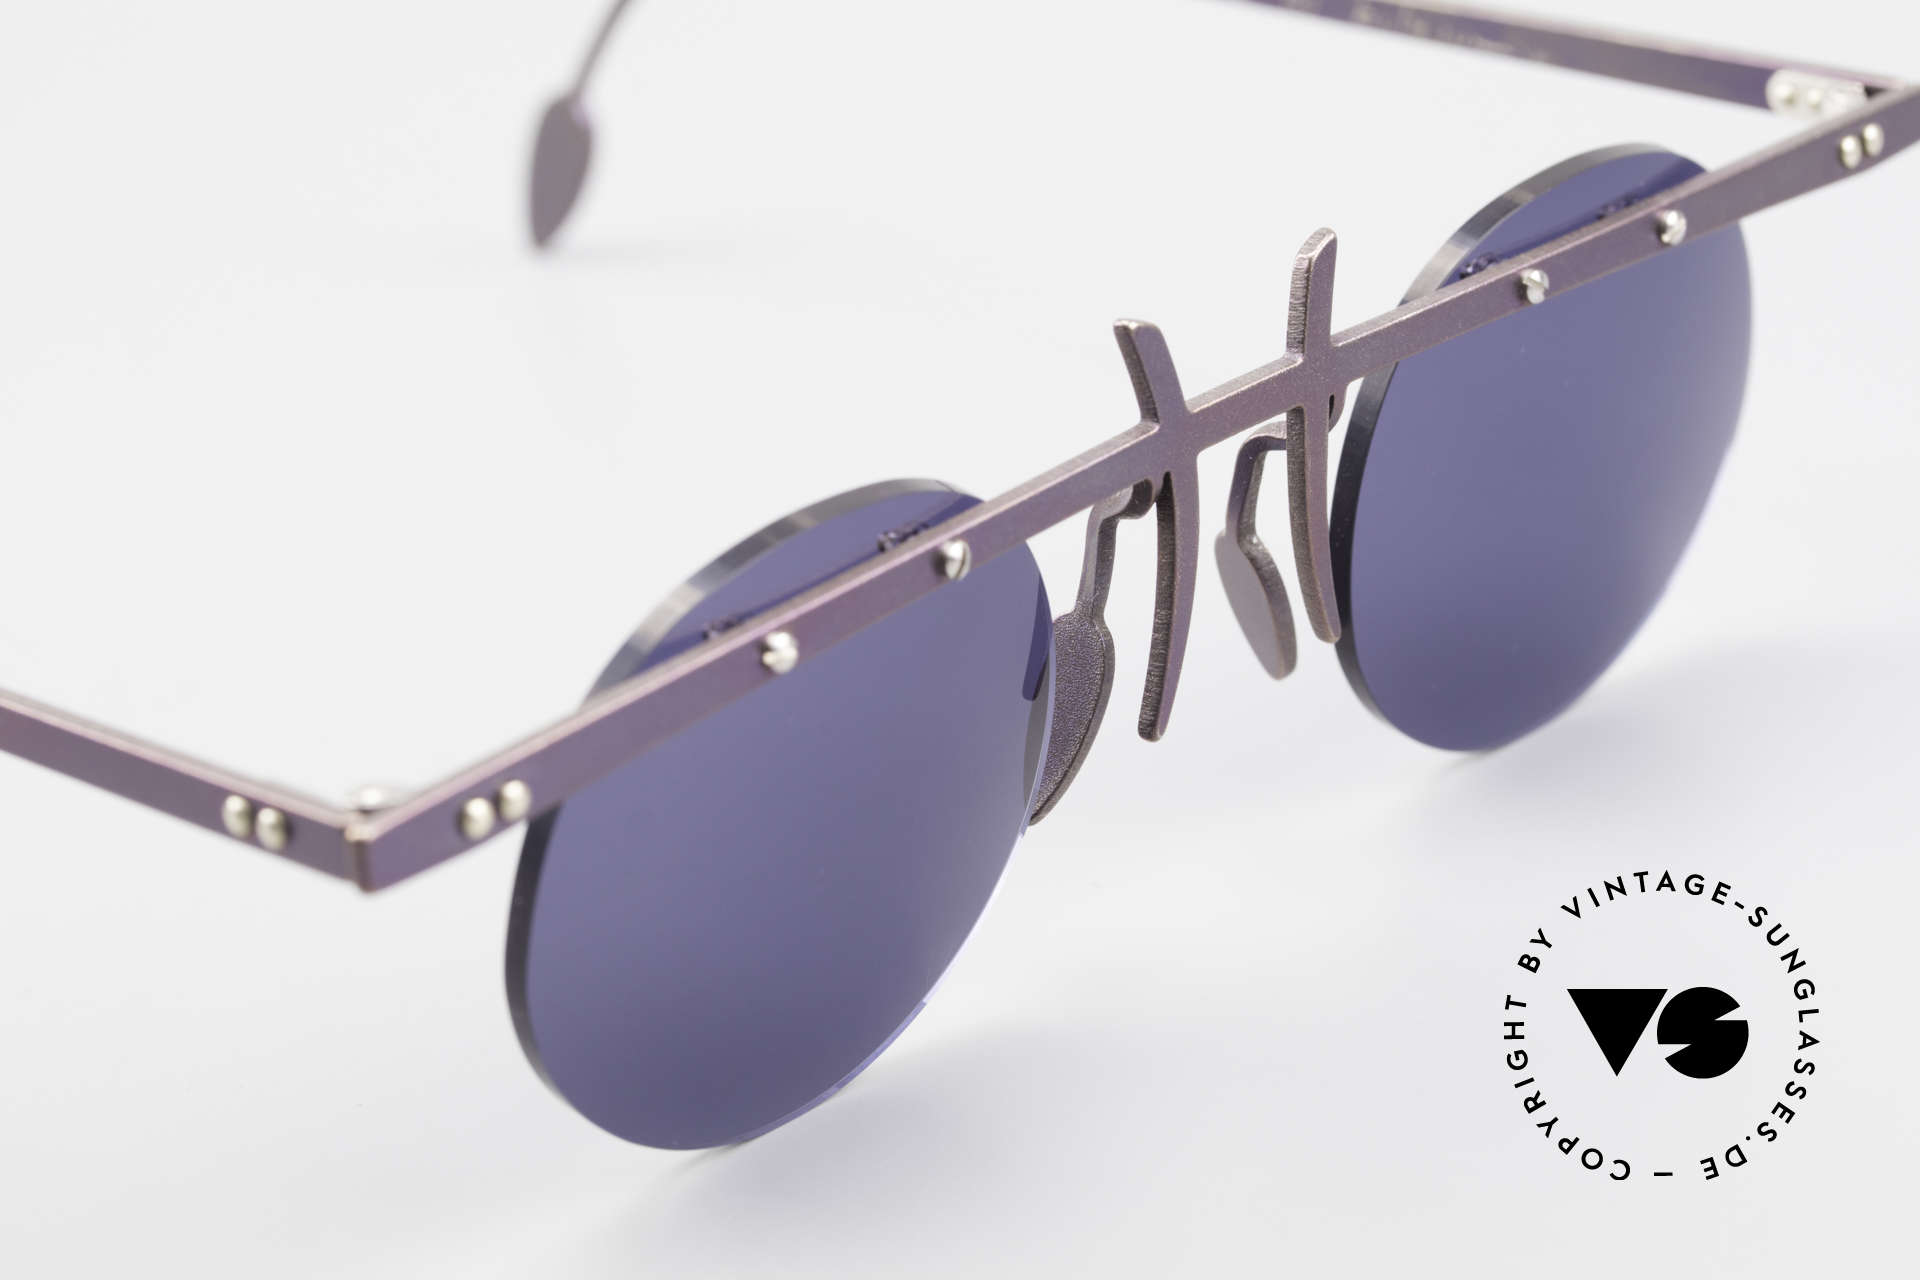 Theo Belgium Tita VI 4 Crazy Sunglasses Titanium 90s, an old, unworn THEO original and NO RETRO EYEWEAR, Made for Men and Women